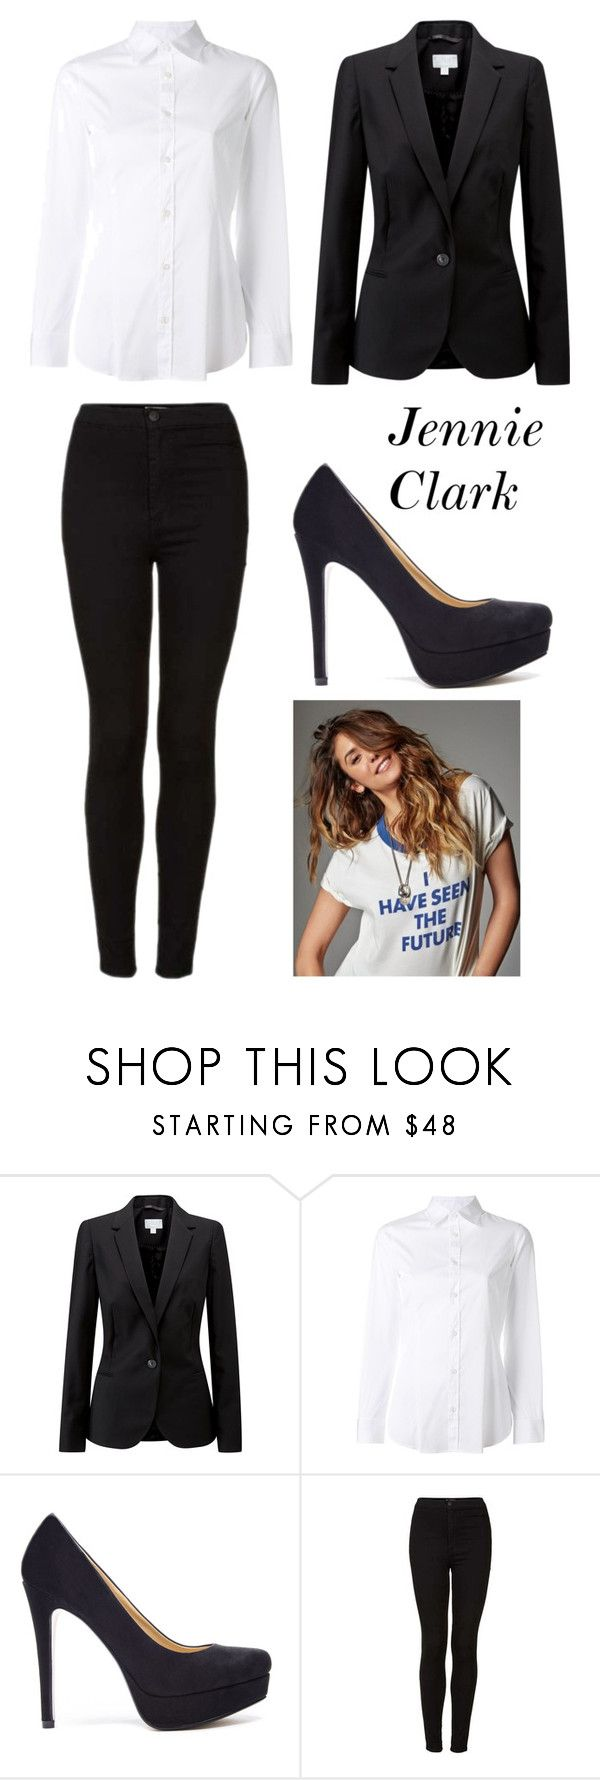 """""""For upcoming story"""" by ctetrash on Polyvore featuring Pure Collection, Dsquared2, Chinese Laundry, Topshop, Heels, blazer, jeans and top"""